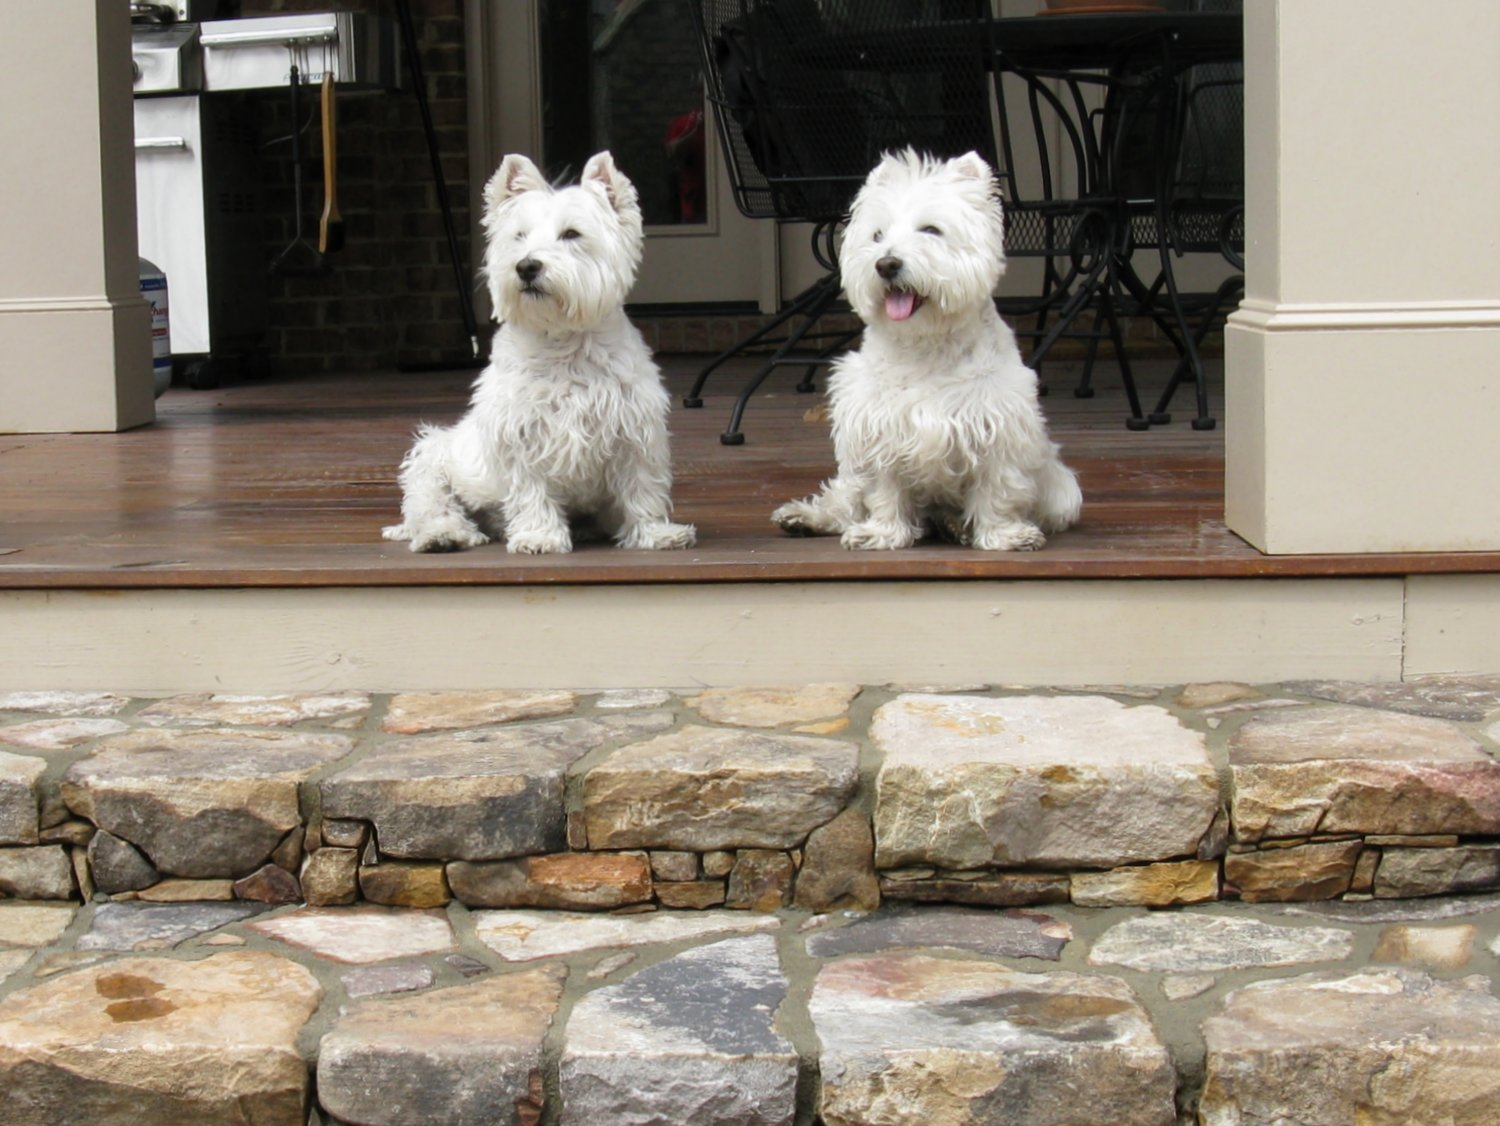 "These stone steps were built with 5"" risers to accommodate small dogs."